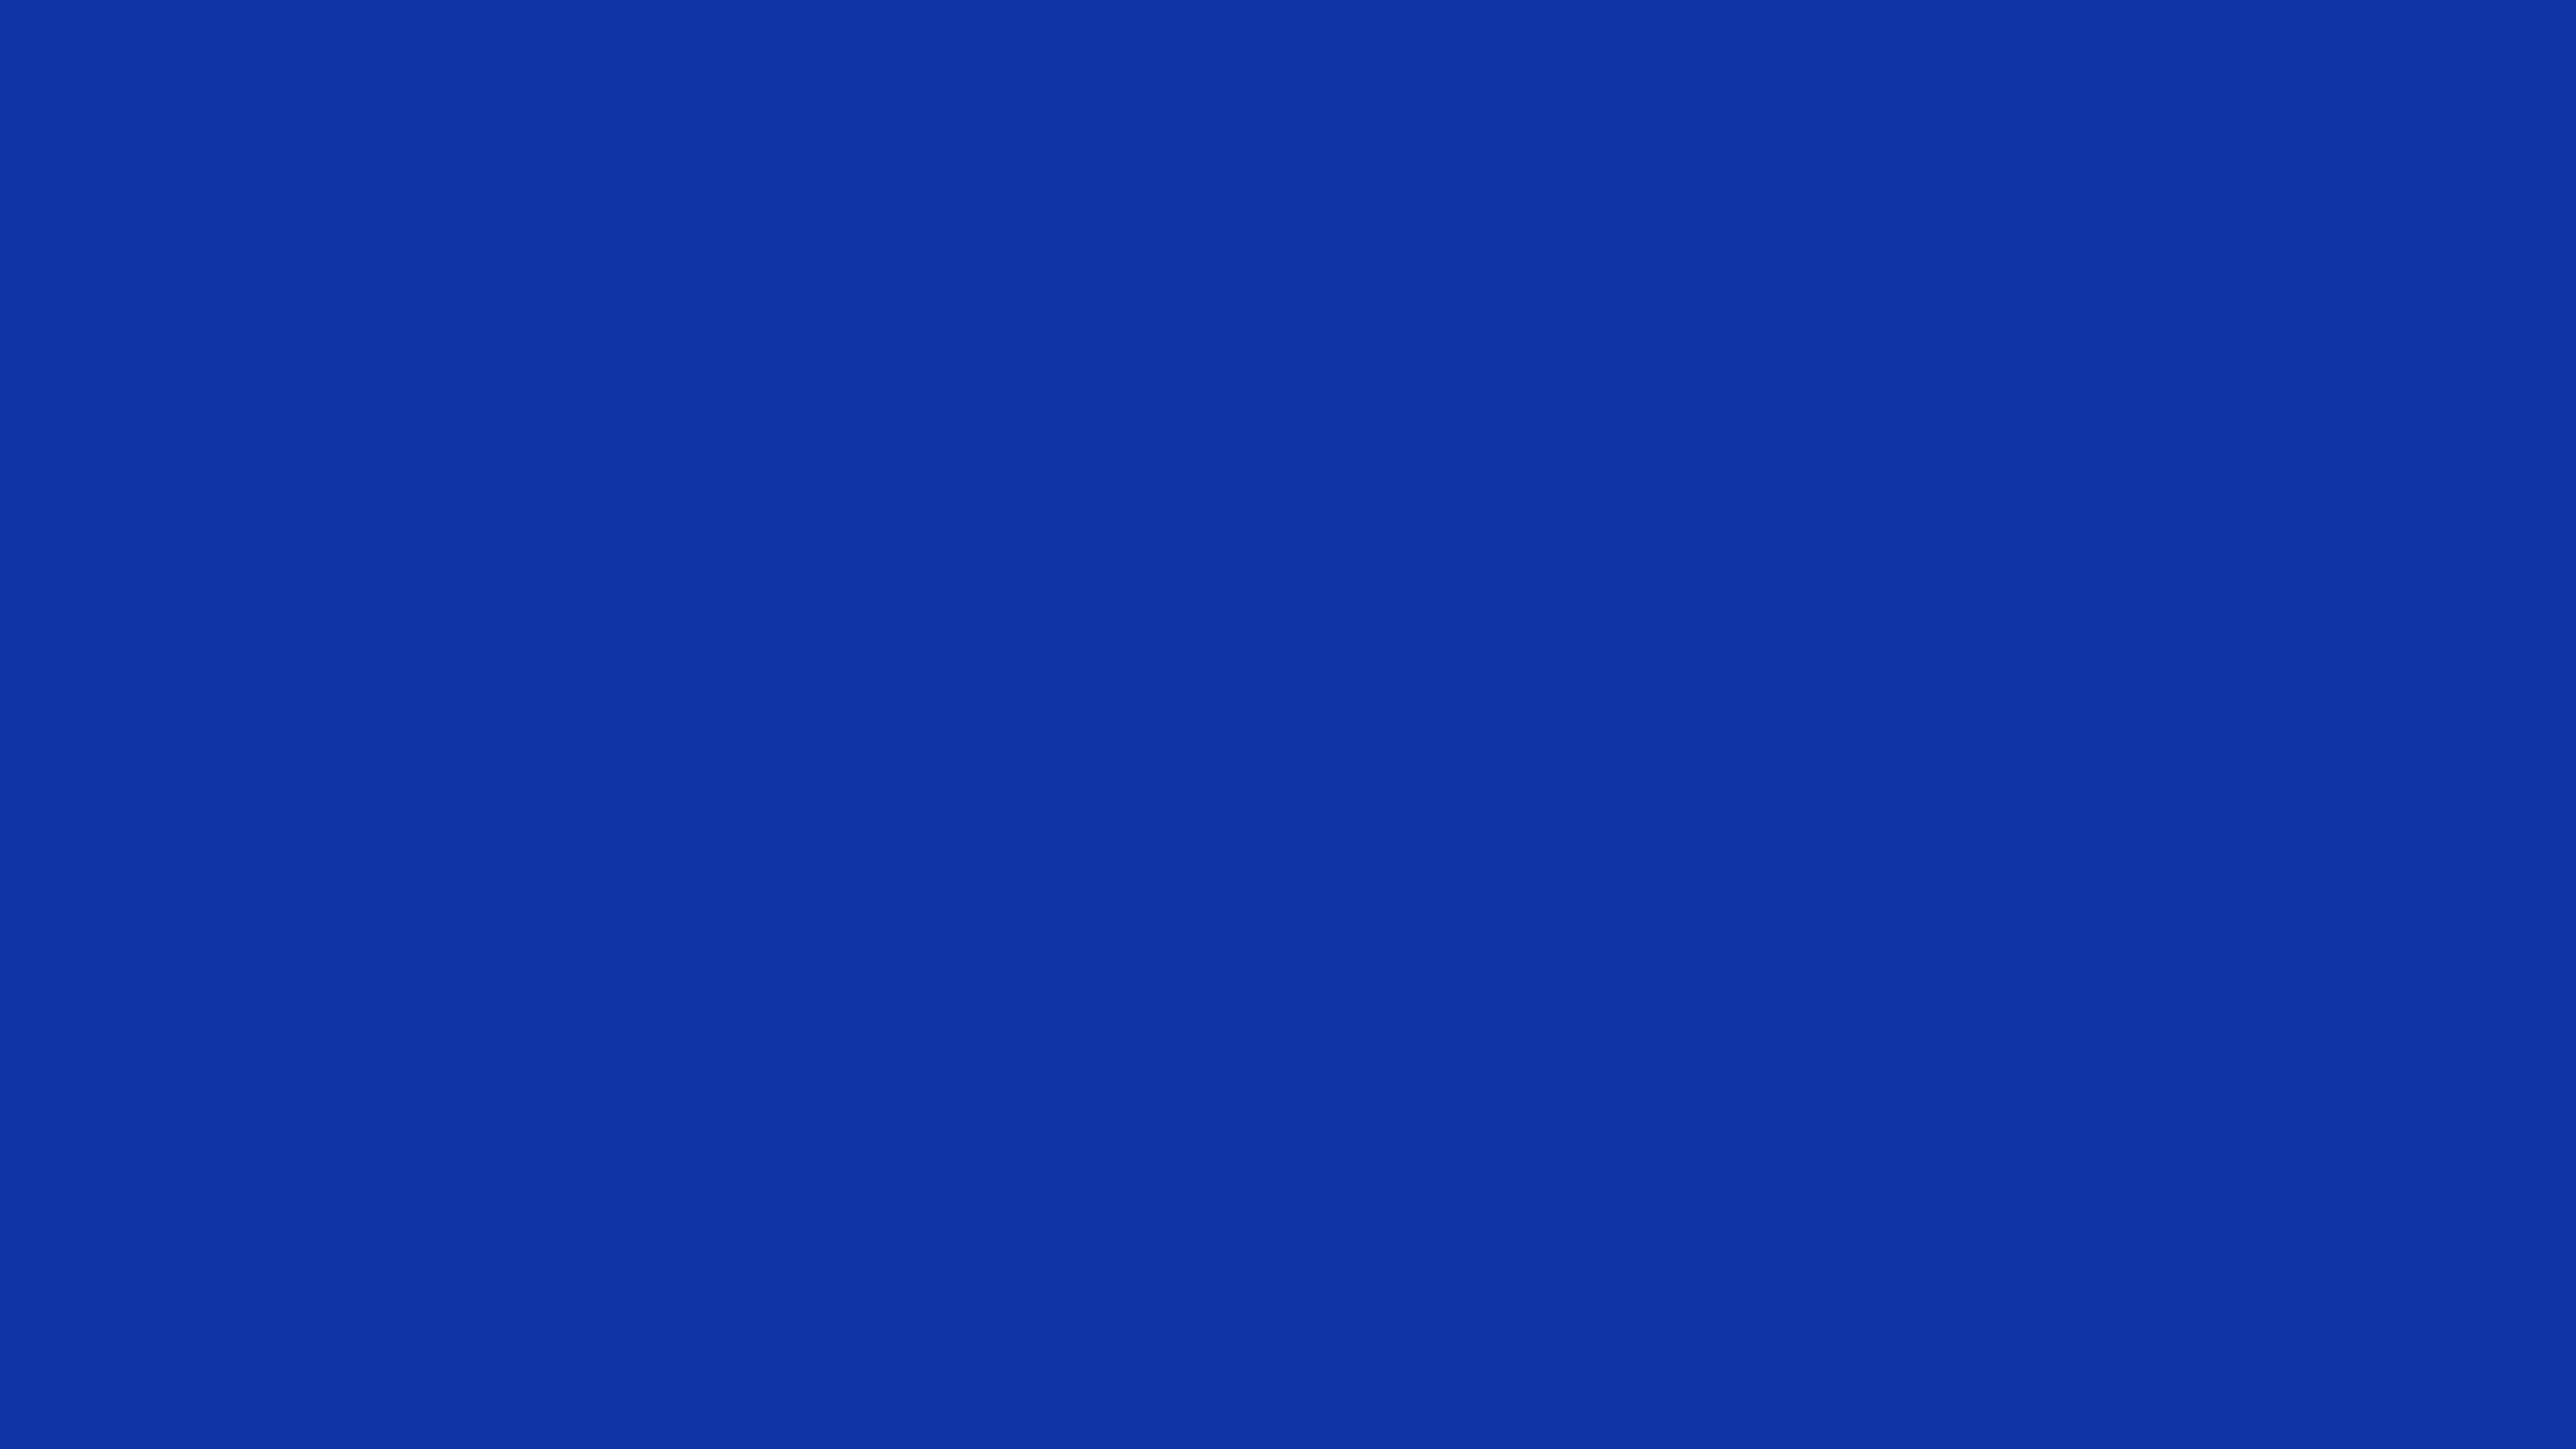 4096x2304 Egyptian Blue Solid Color Background